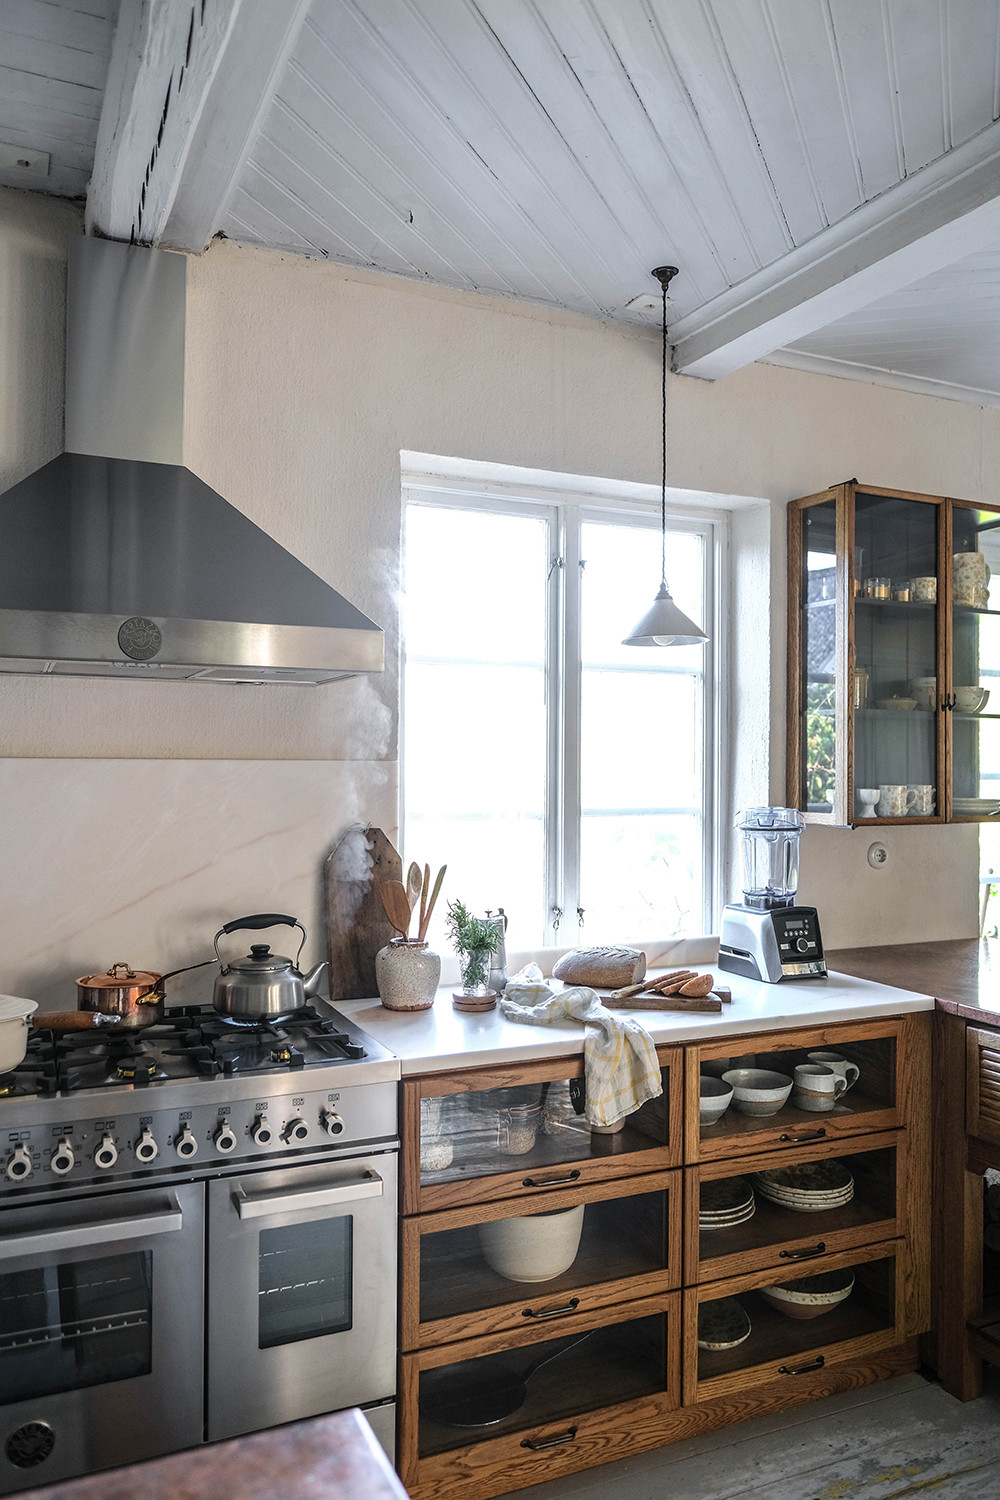 Décor Inspiration | The Most Cosy Mid-Century Kitchen in Sweden